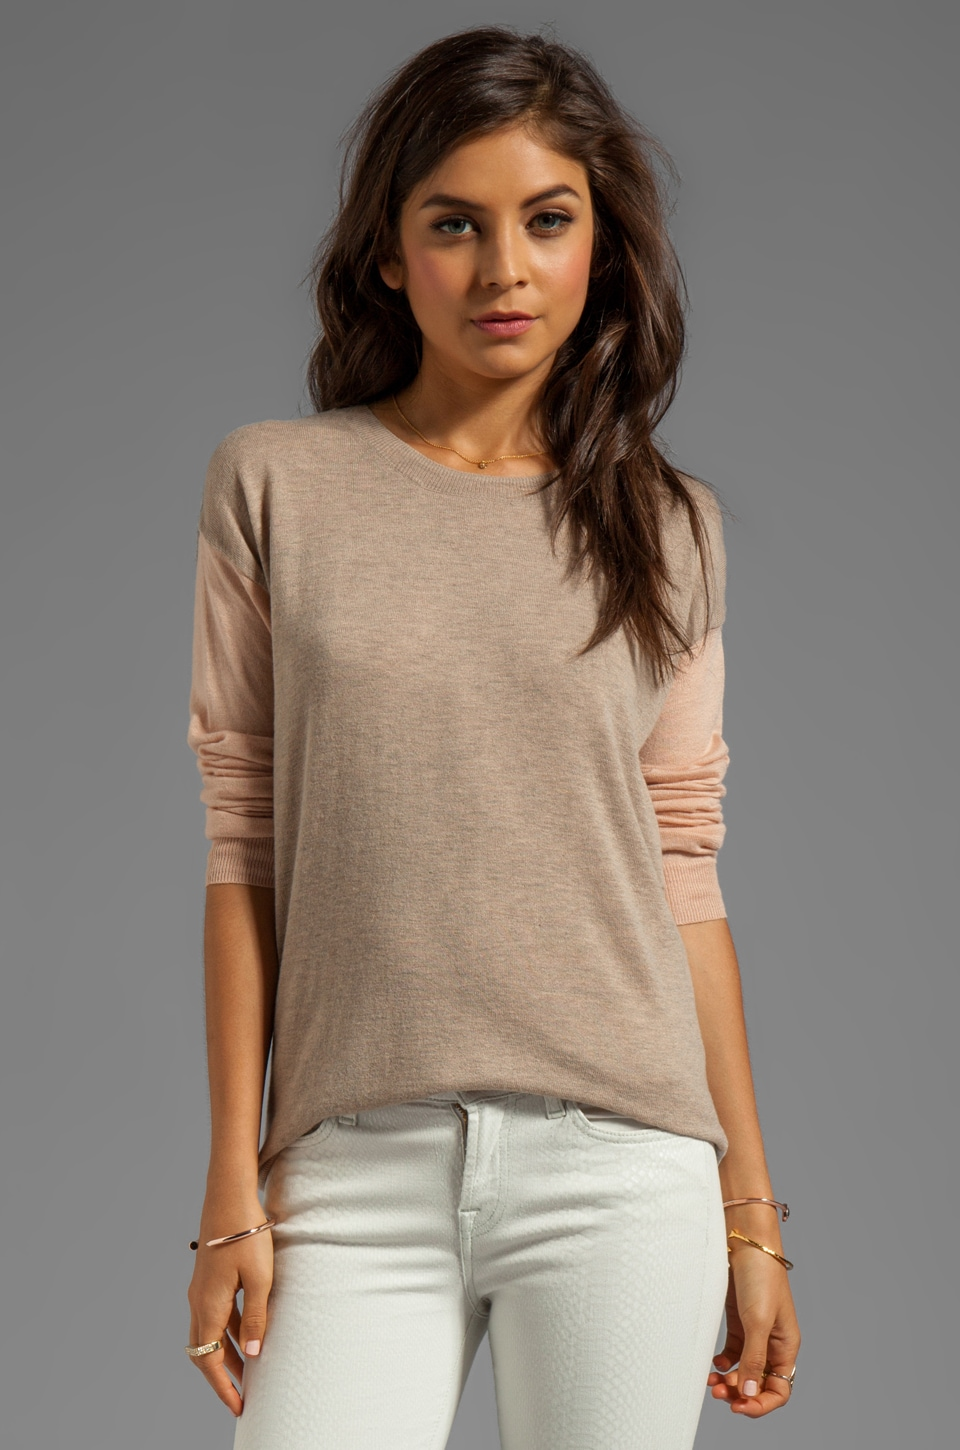 Rebecca Taylor Colorblocked Crew Sweater in Camel/Rose